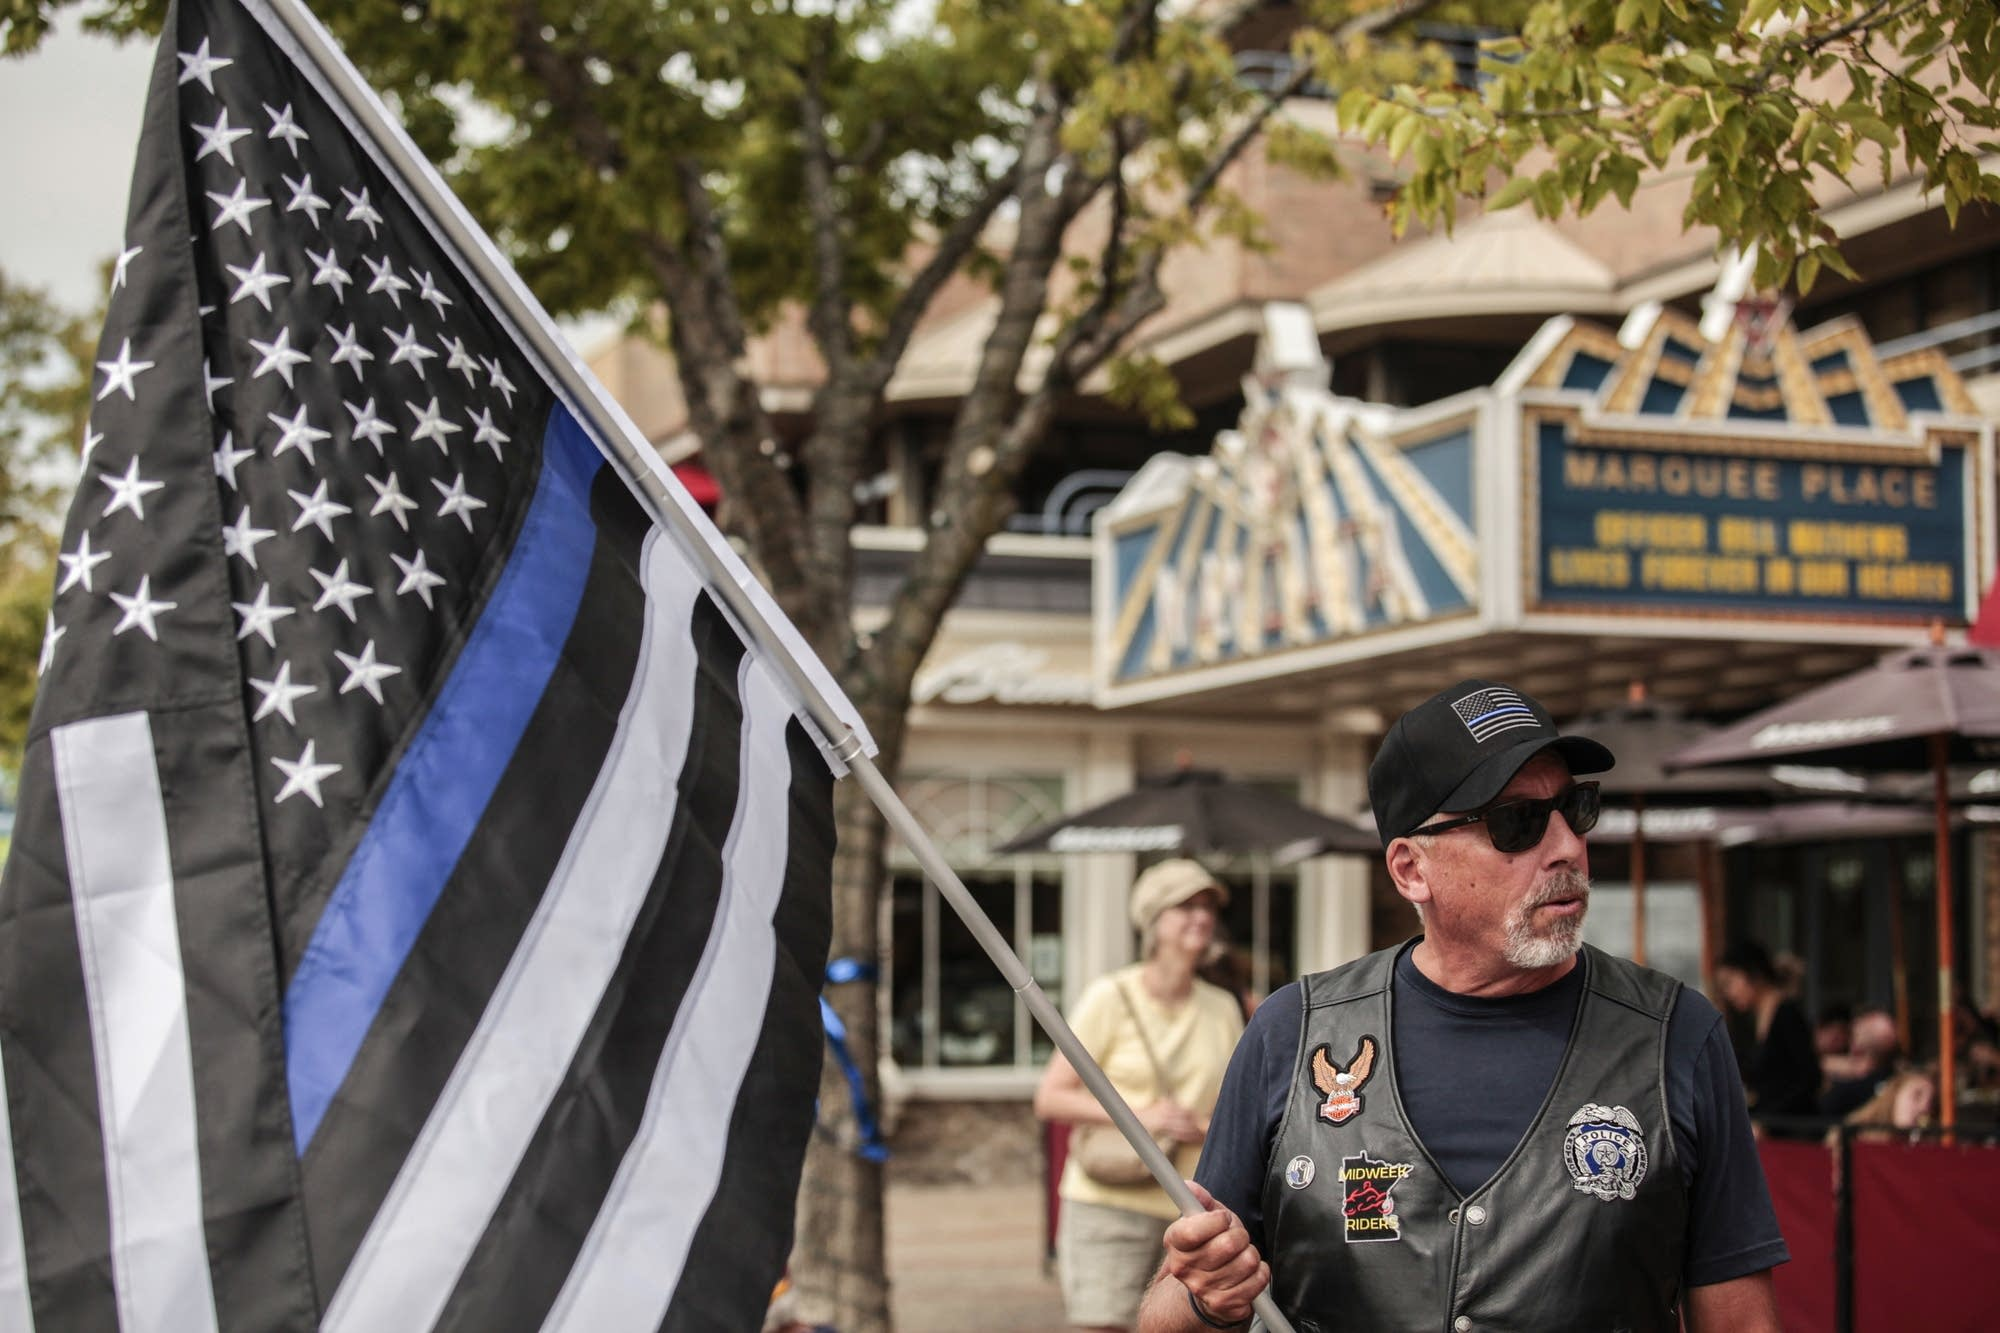 Retired officer Dennis Hansen holds a flag that represents police officers.